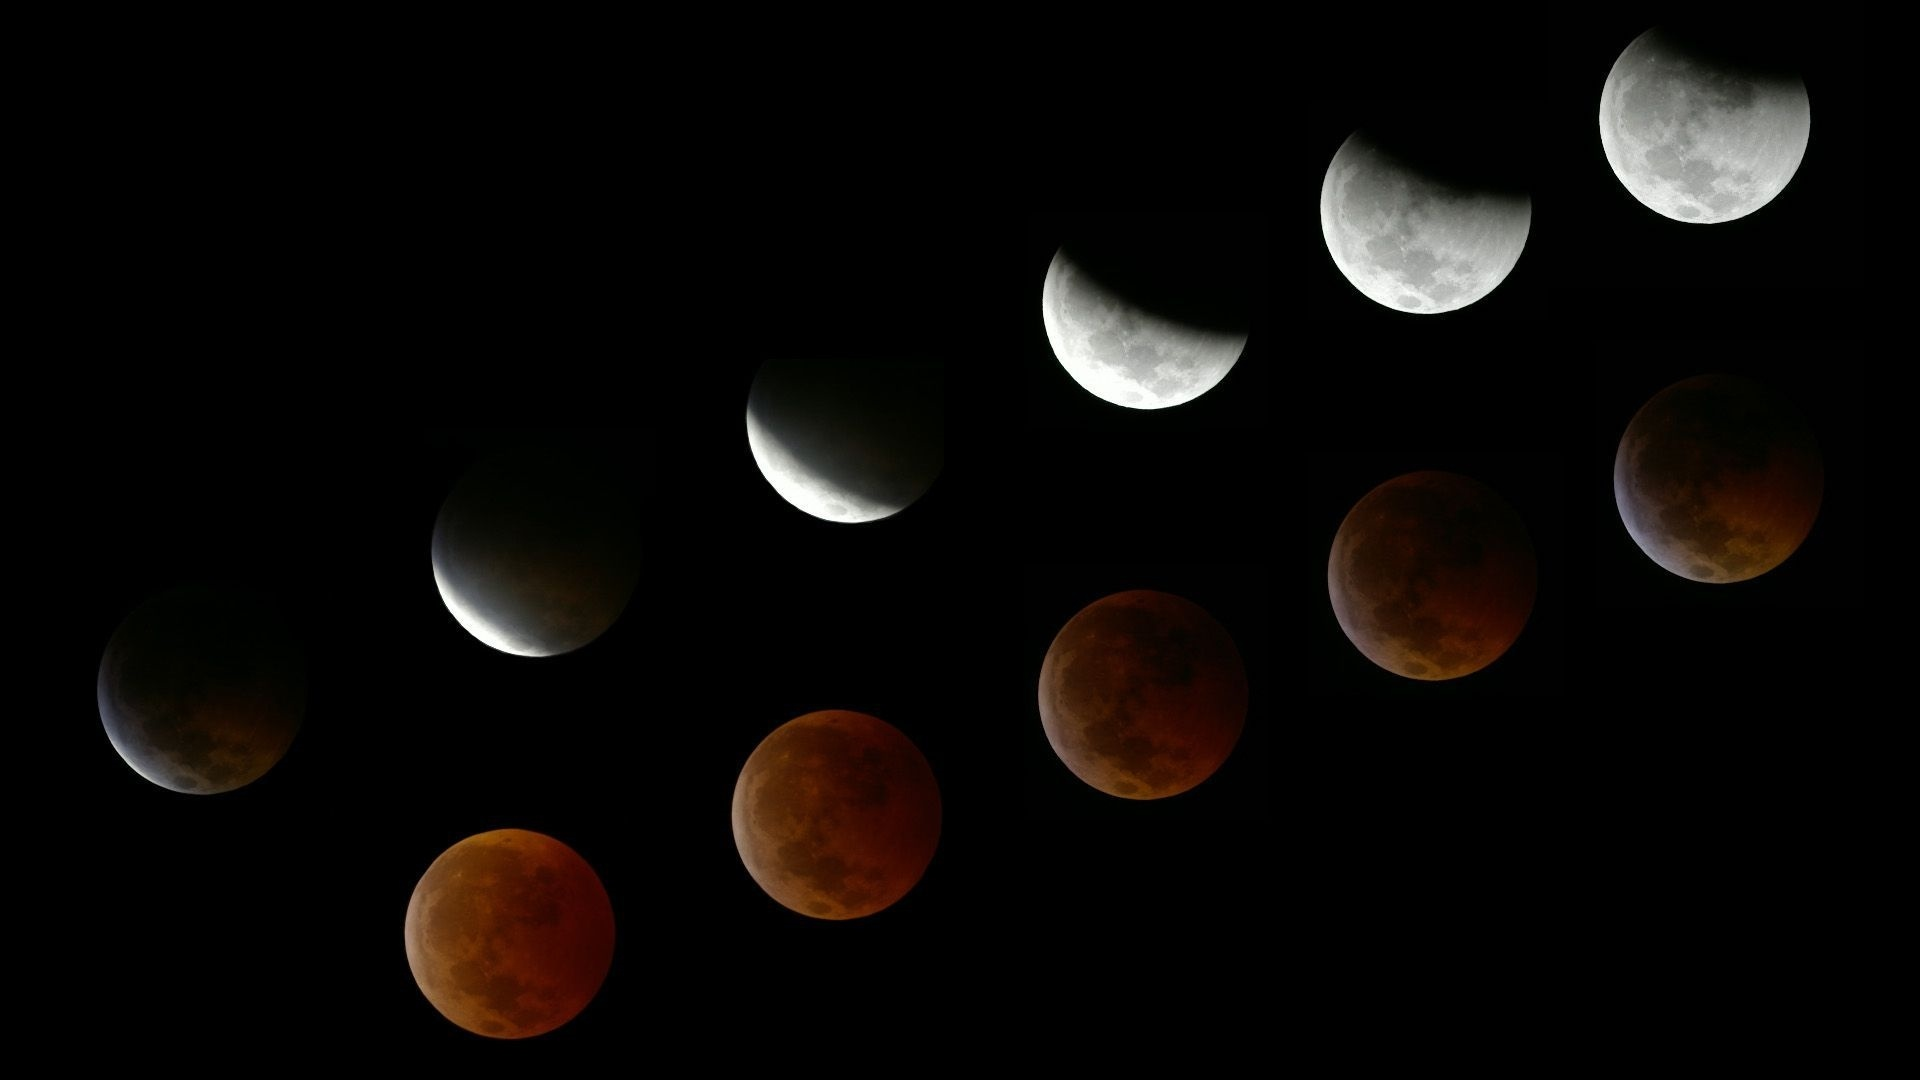 Moon Phases Image